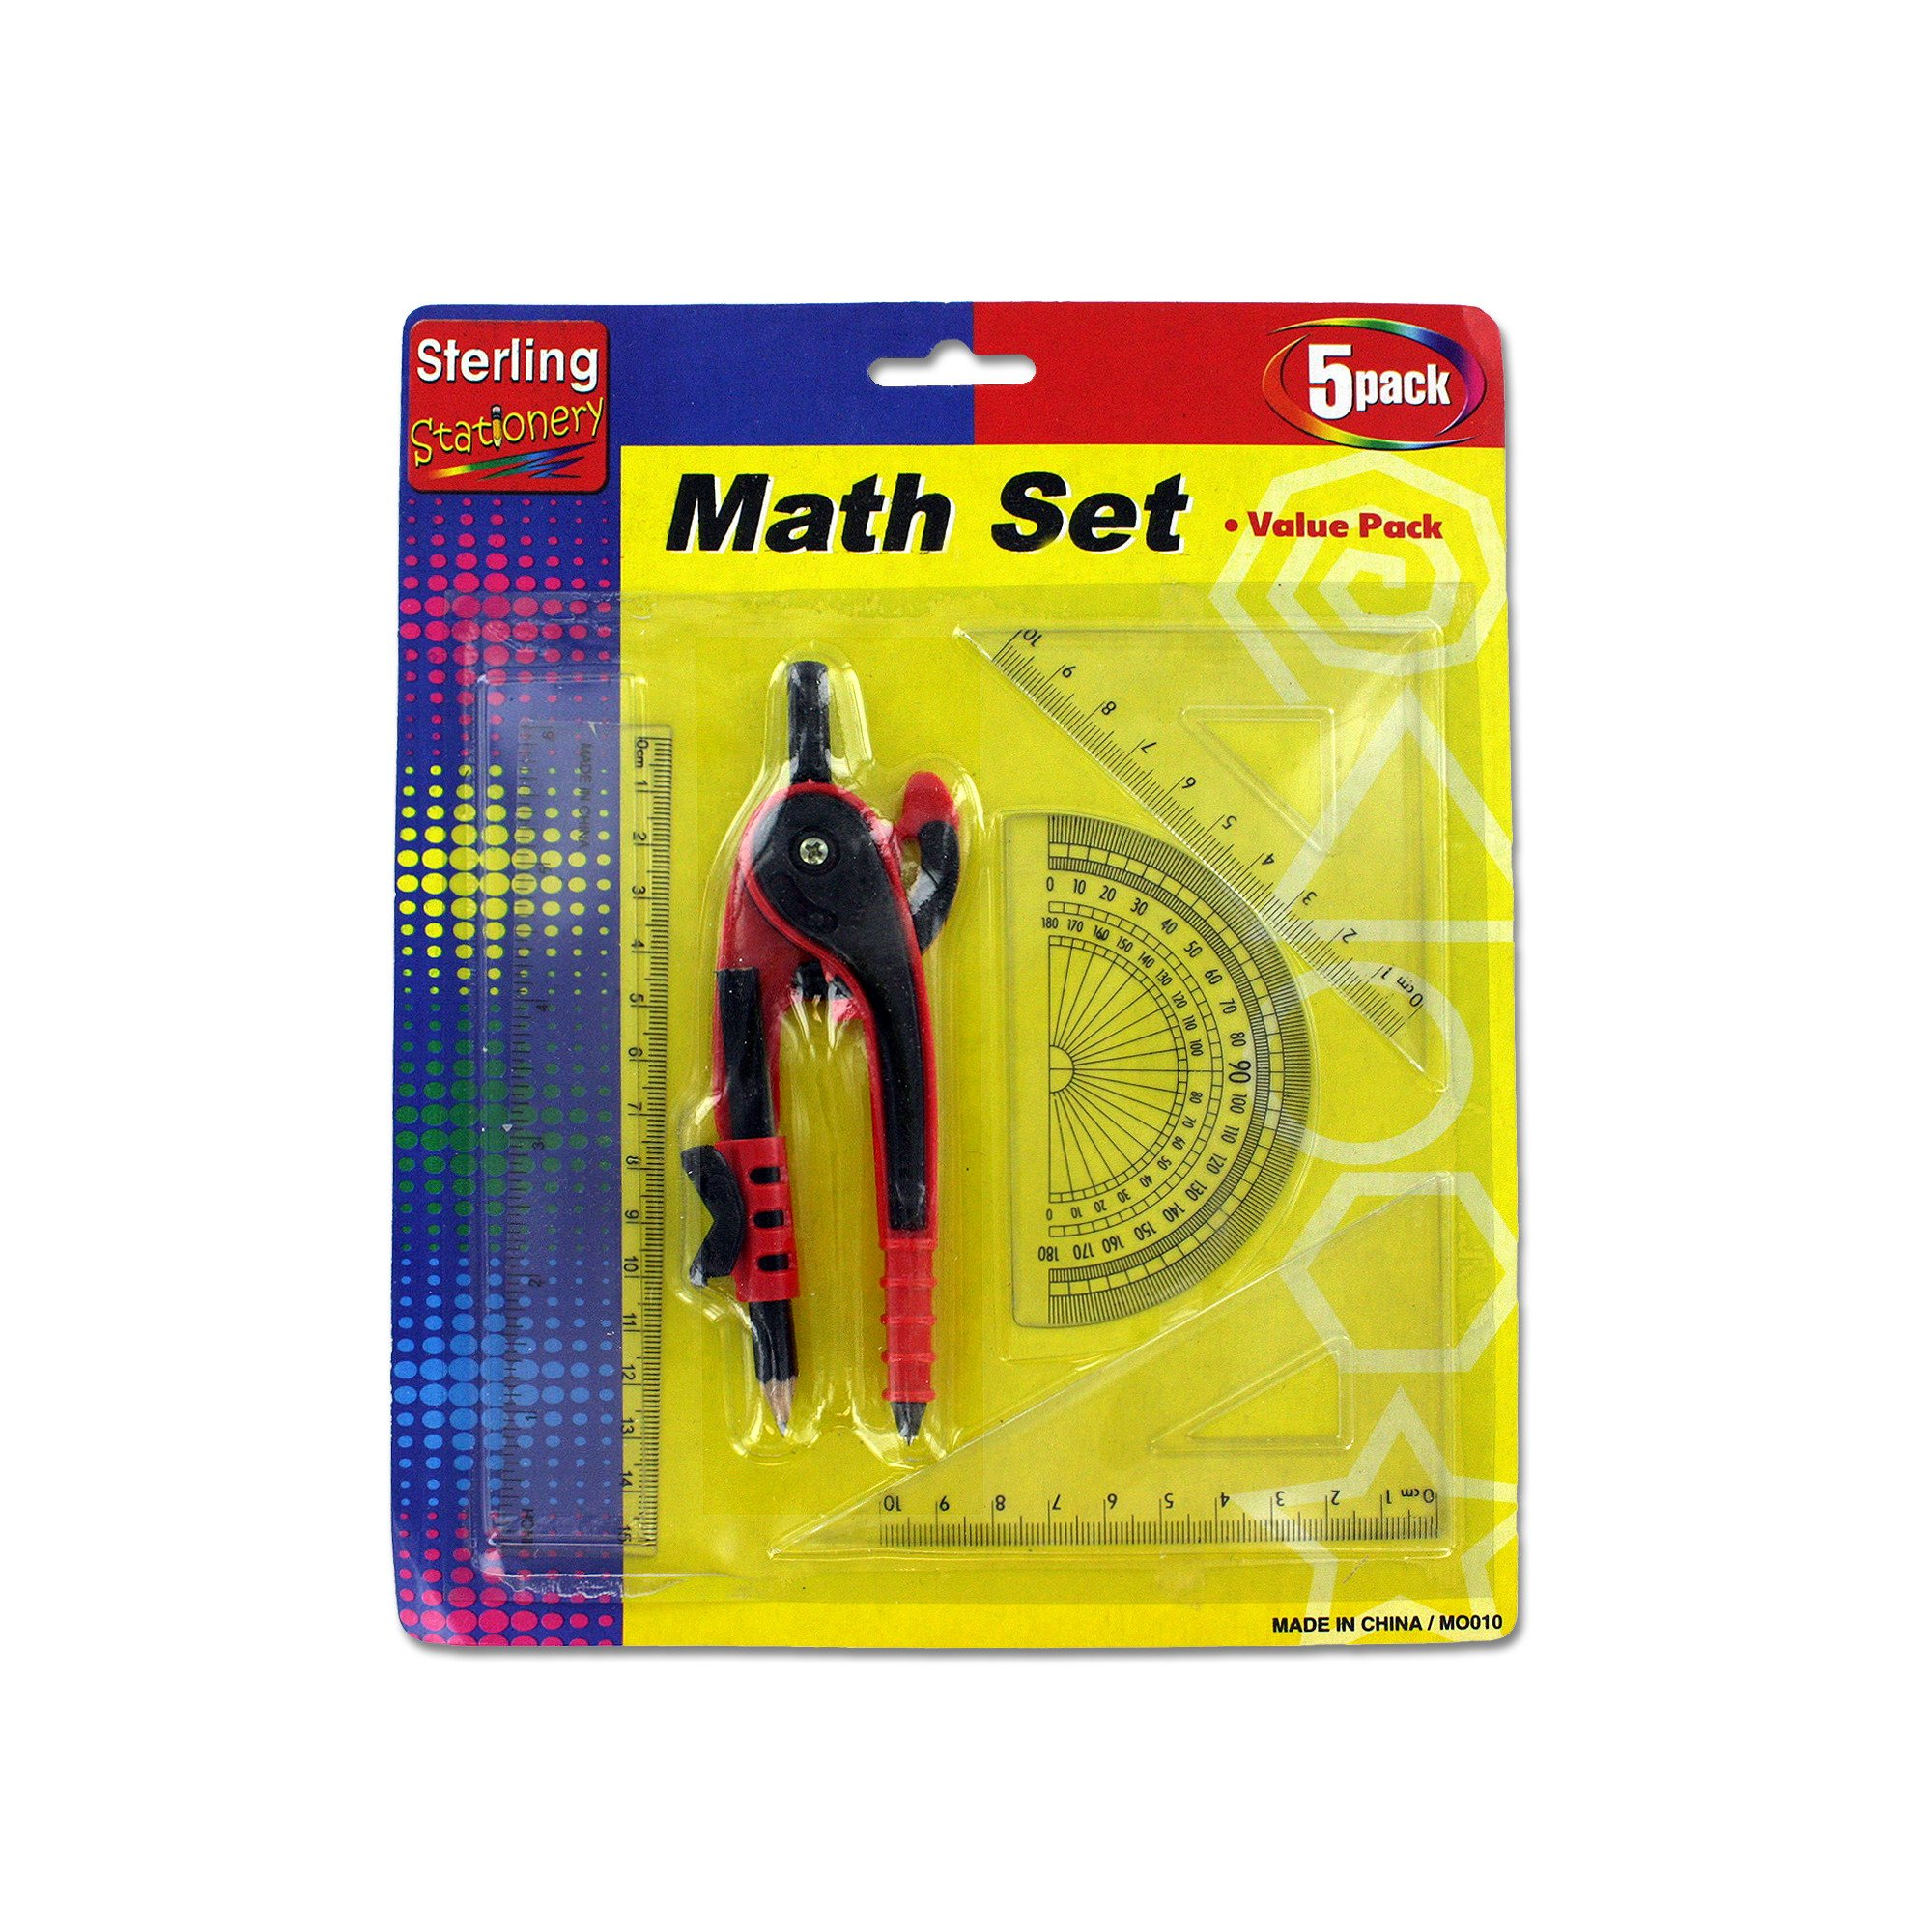 123-Wholesale - Set of 30 Math Measuring Set with Pencil - School & Office Supplies Rulers & Protractors